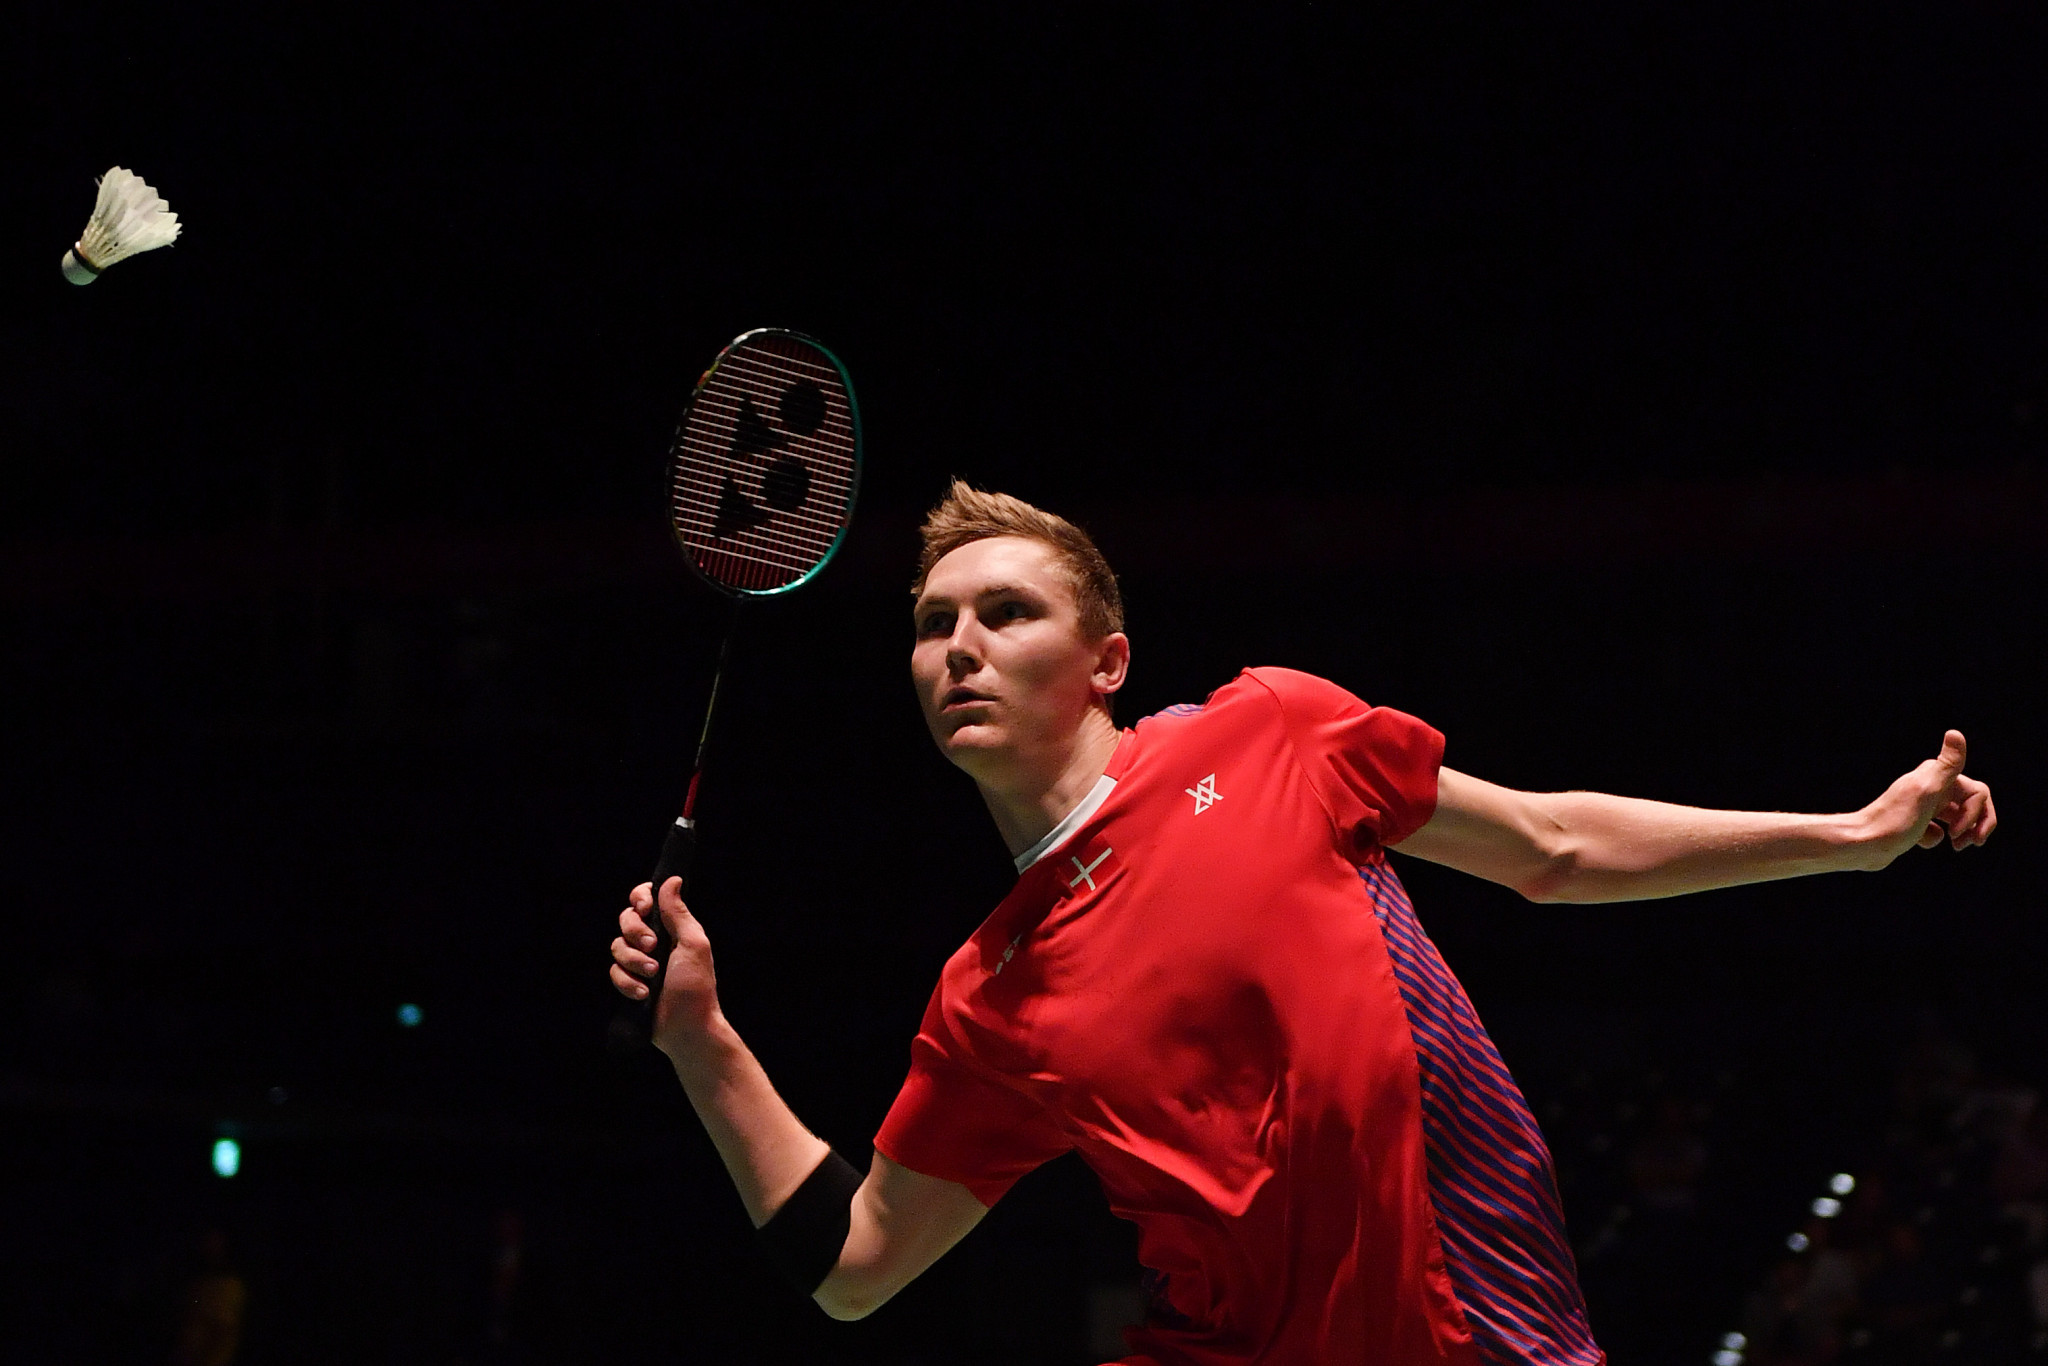 Home favourite Viktor Axelsen's hopes of claiming a first-ever title at the BWF Denmark Open came to an abrupt end today ©Getty Images